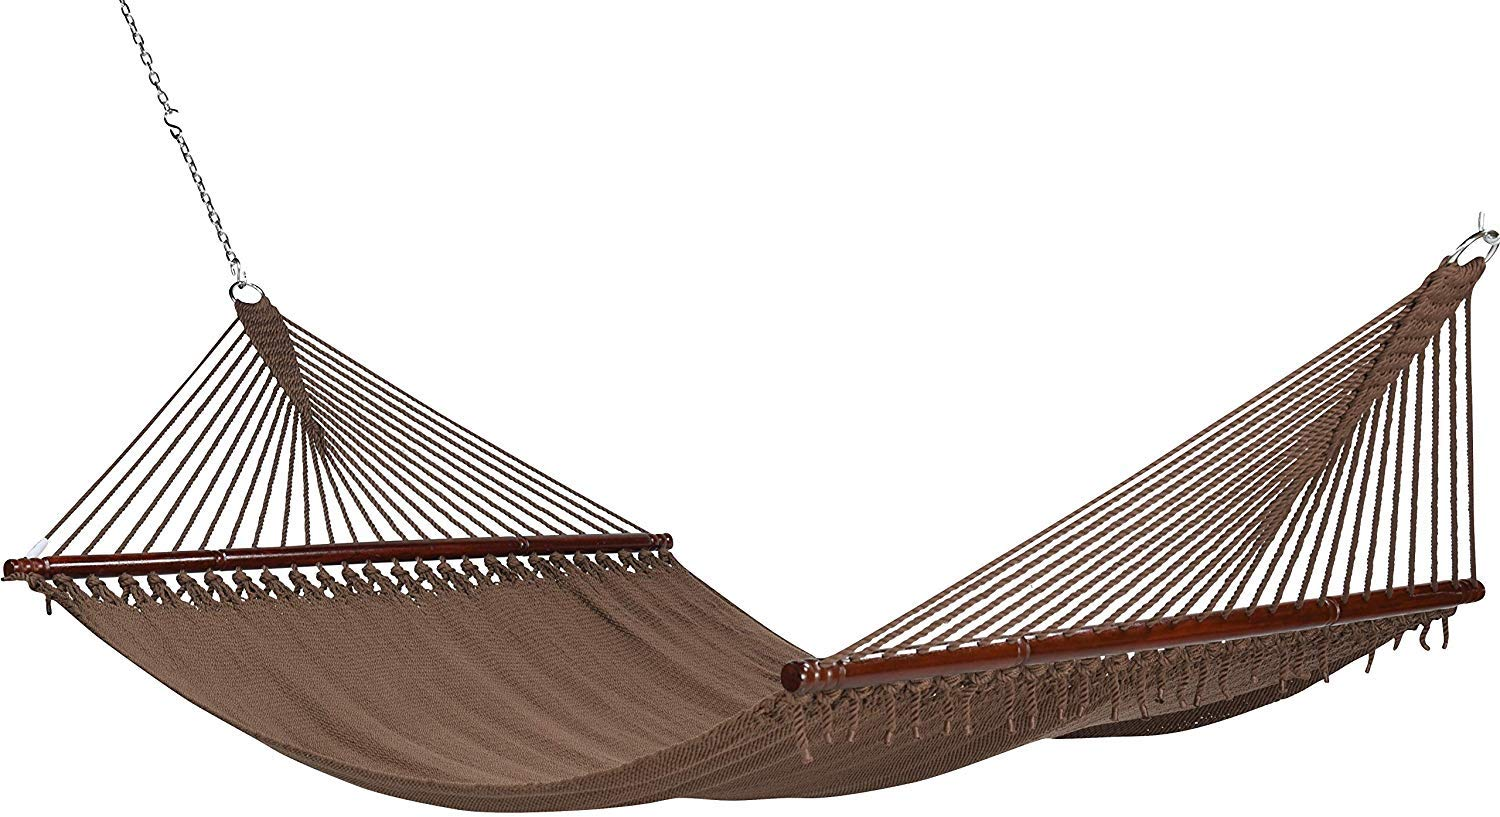 Project One 10FT Polyester Soft-Spun Rope Hammock, 51inch Large Double Wide Two Person with Spreader Bars – for Outdoor Patio, Yard, and Porch Mocha